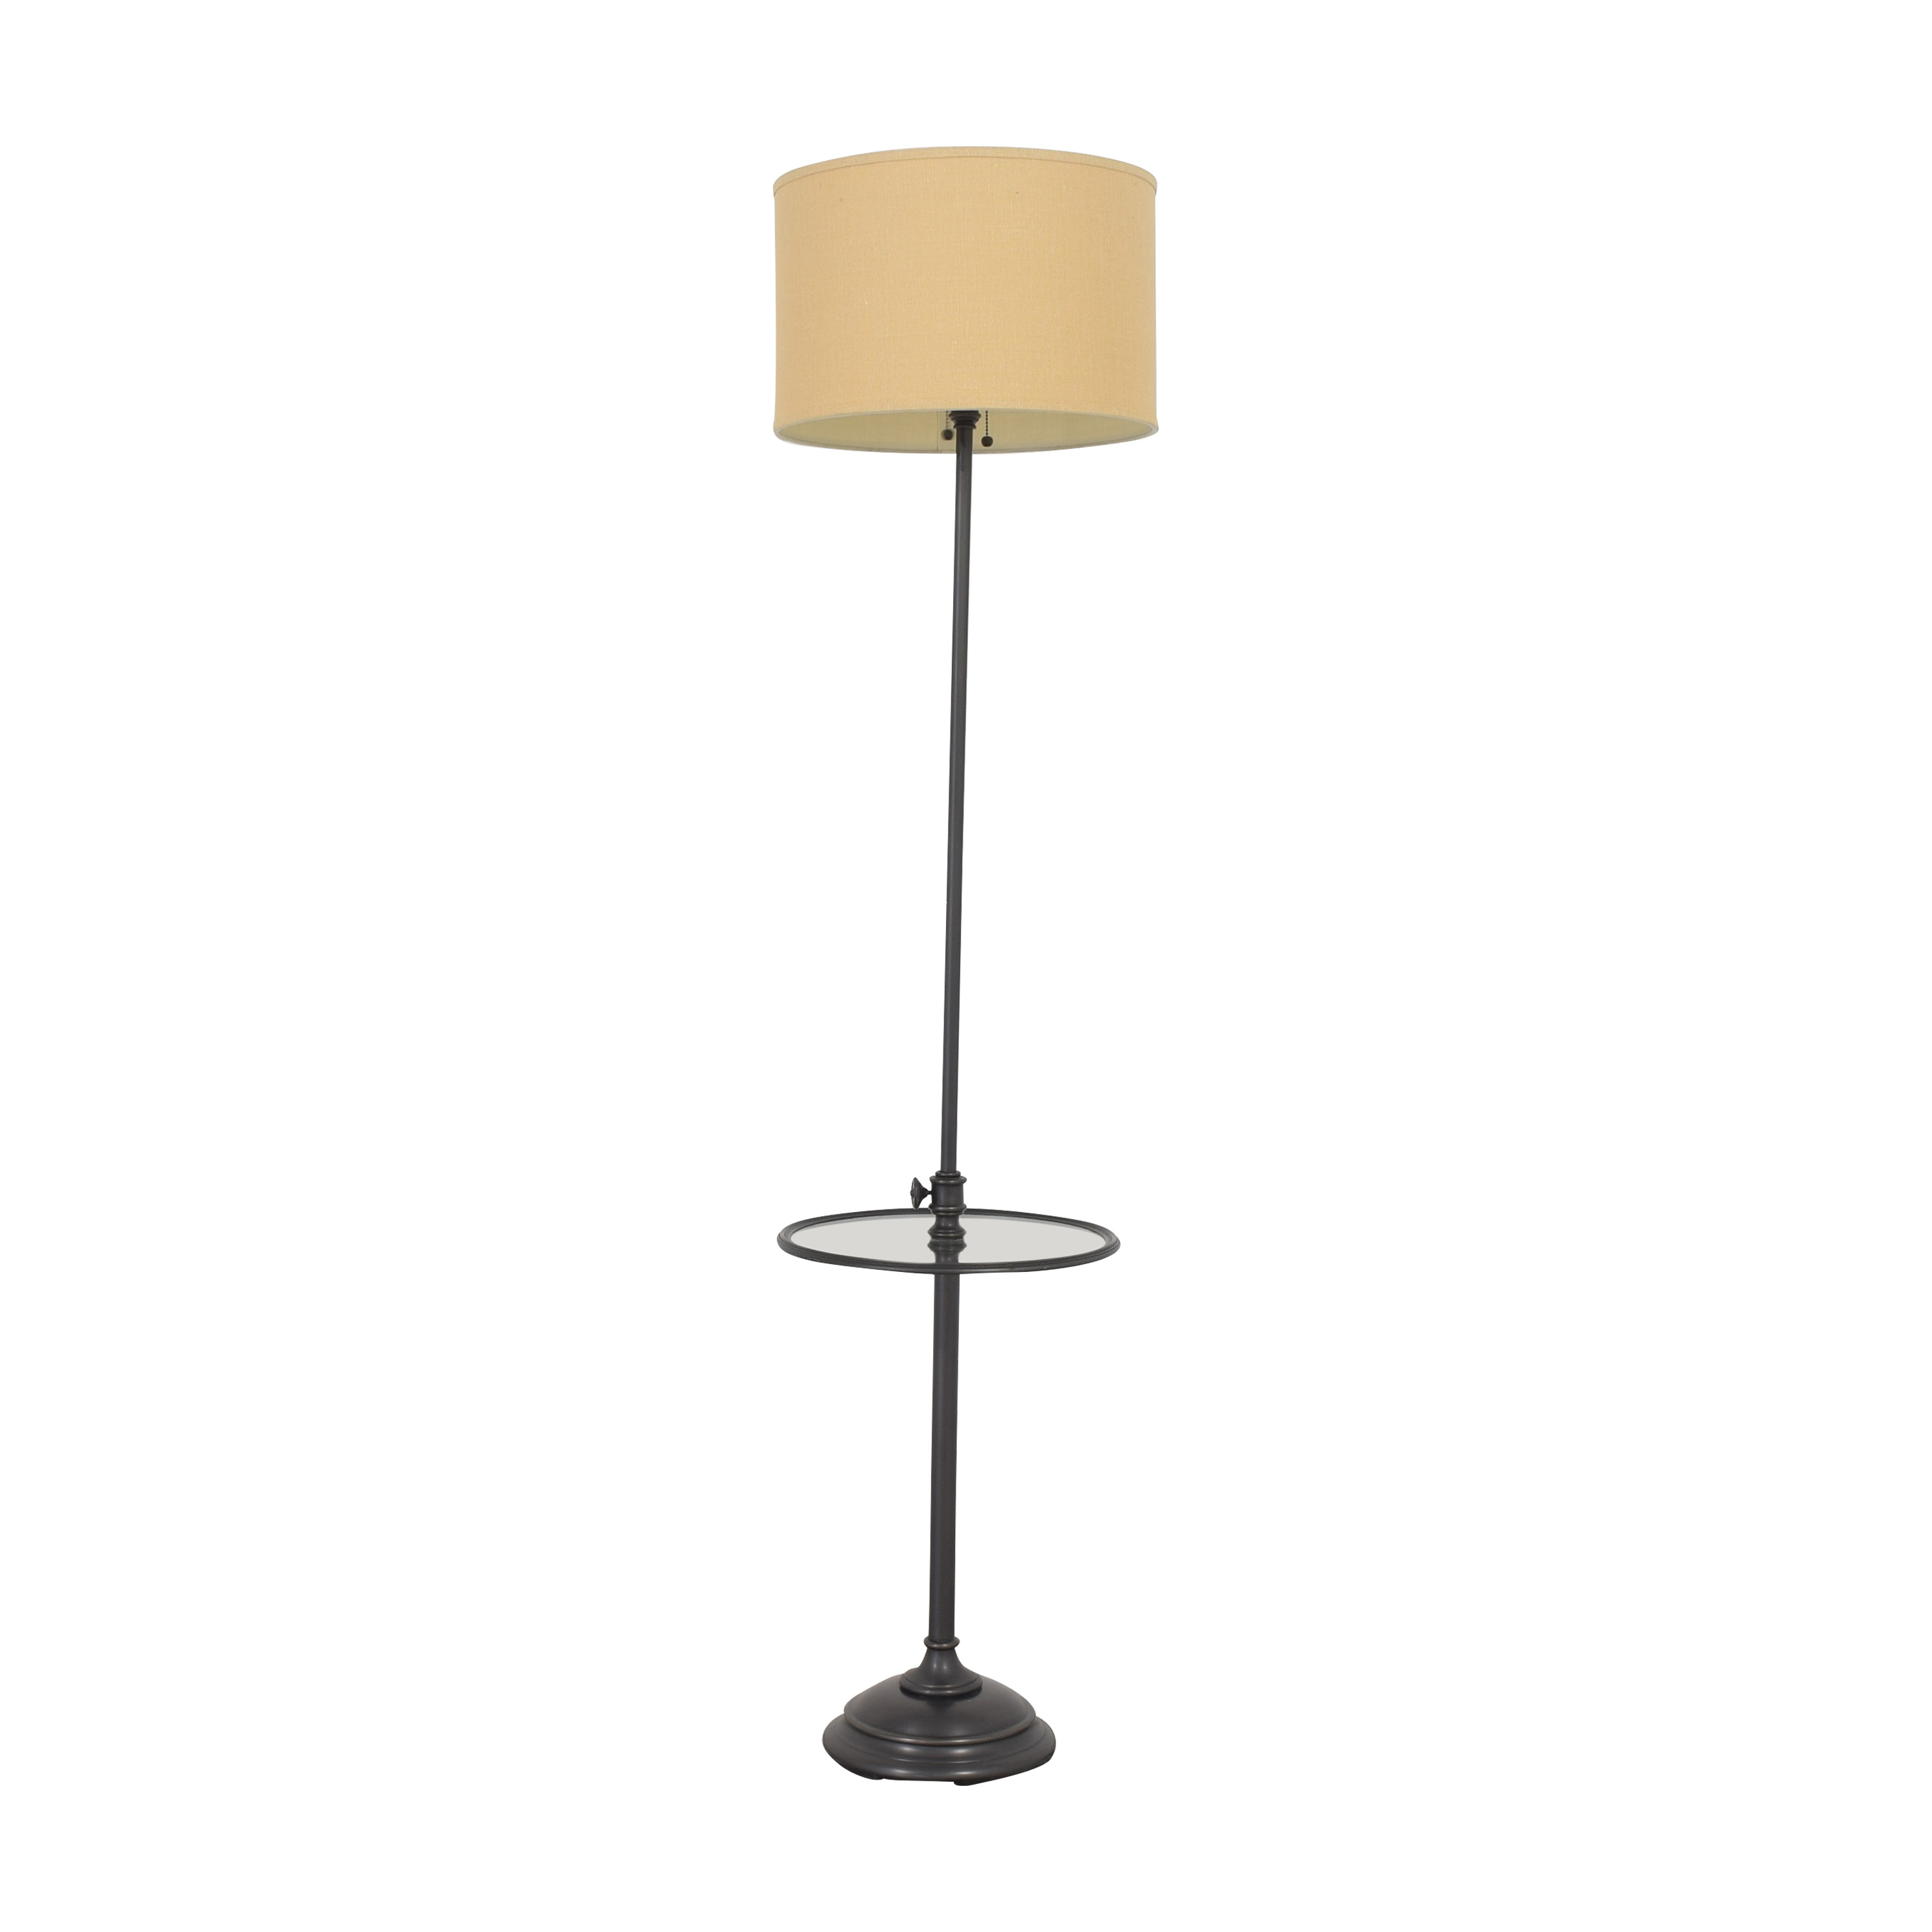 buy Pottery Barn Pottery Barn Chelsea Floor Lamp With Tray online